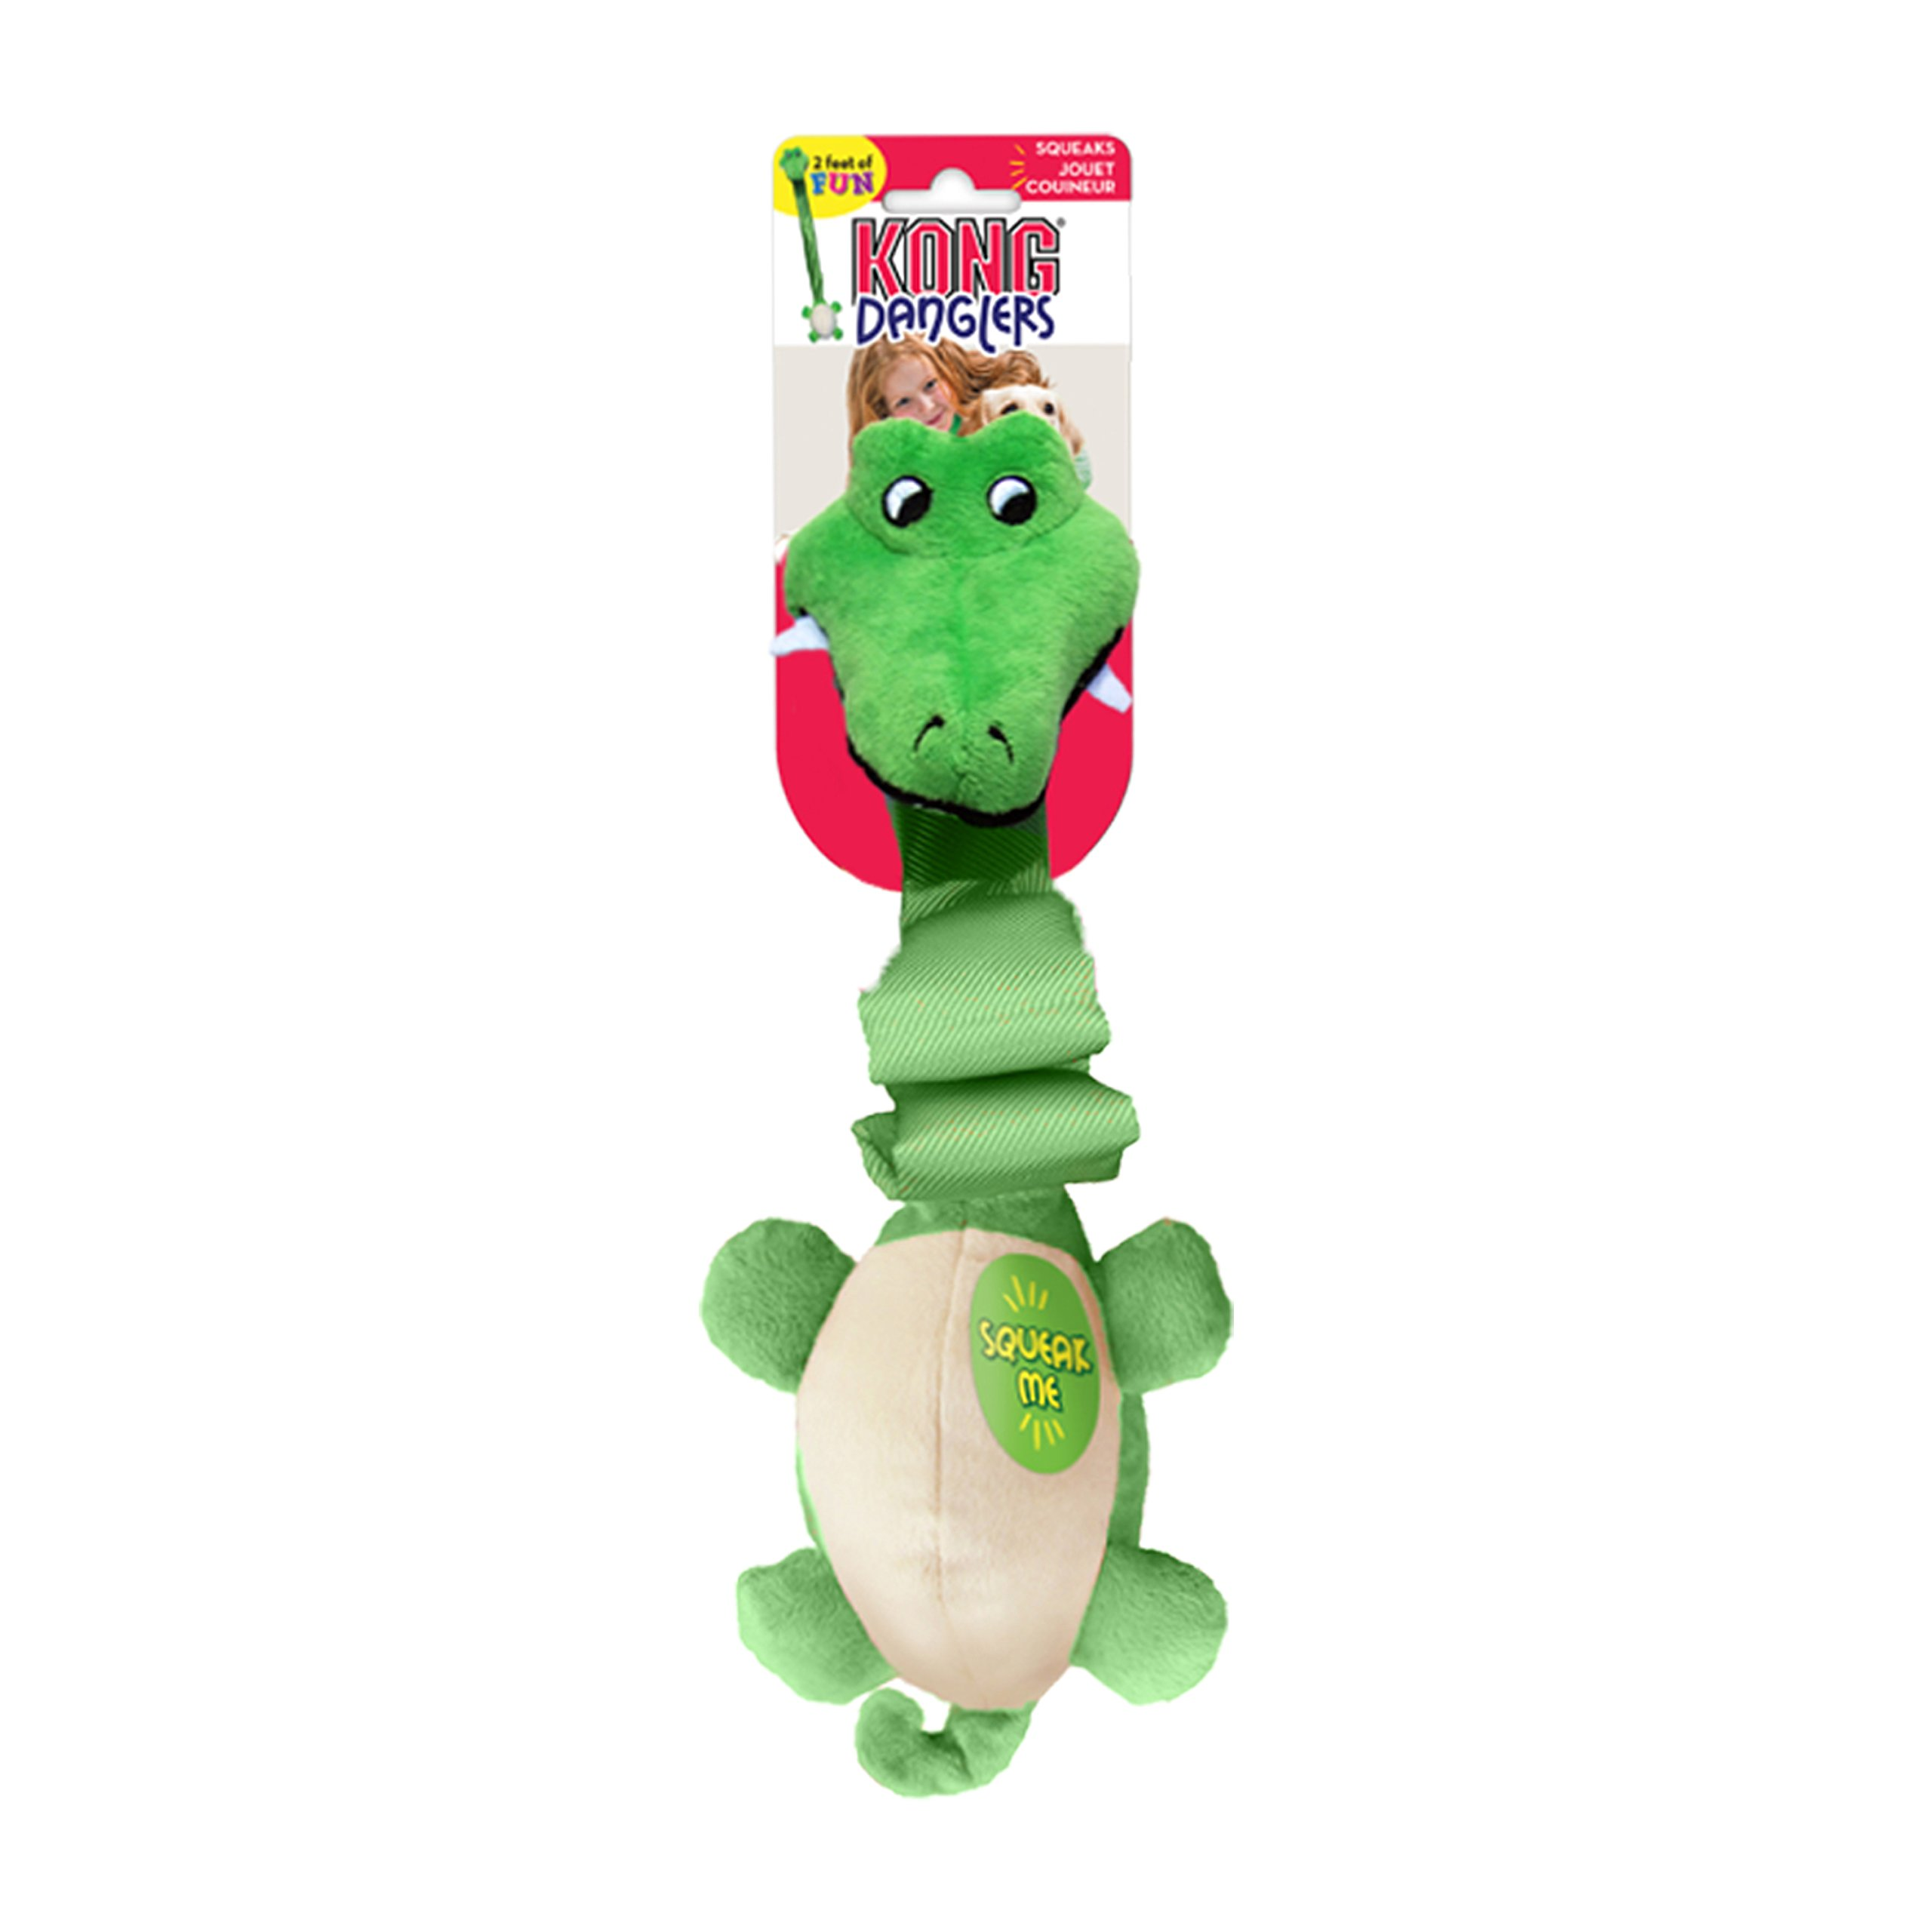 KONG Danglers Gator Dog Toy by KONG (Image #3)